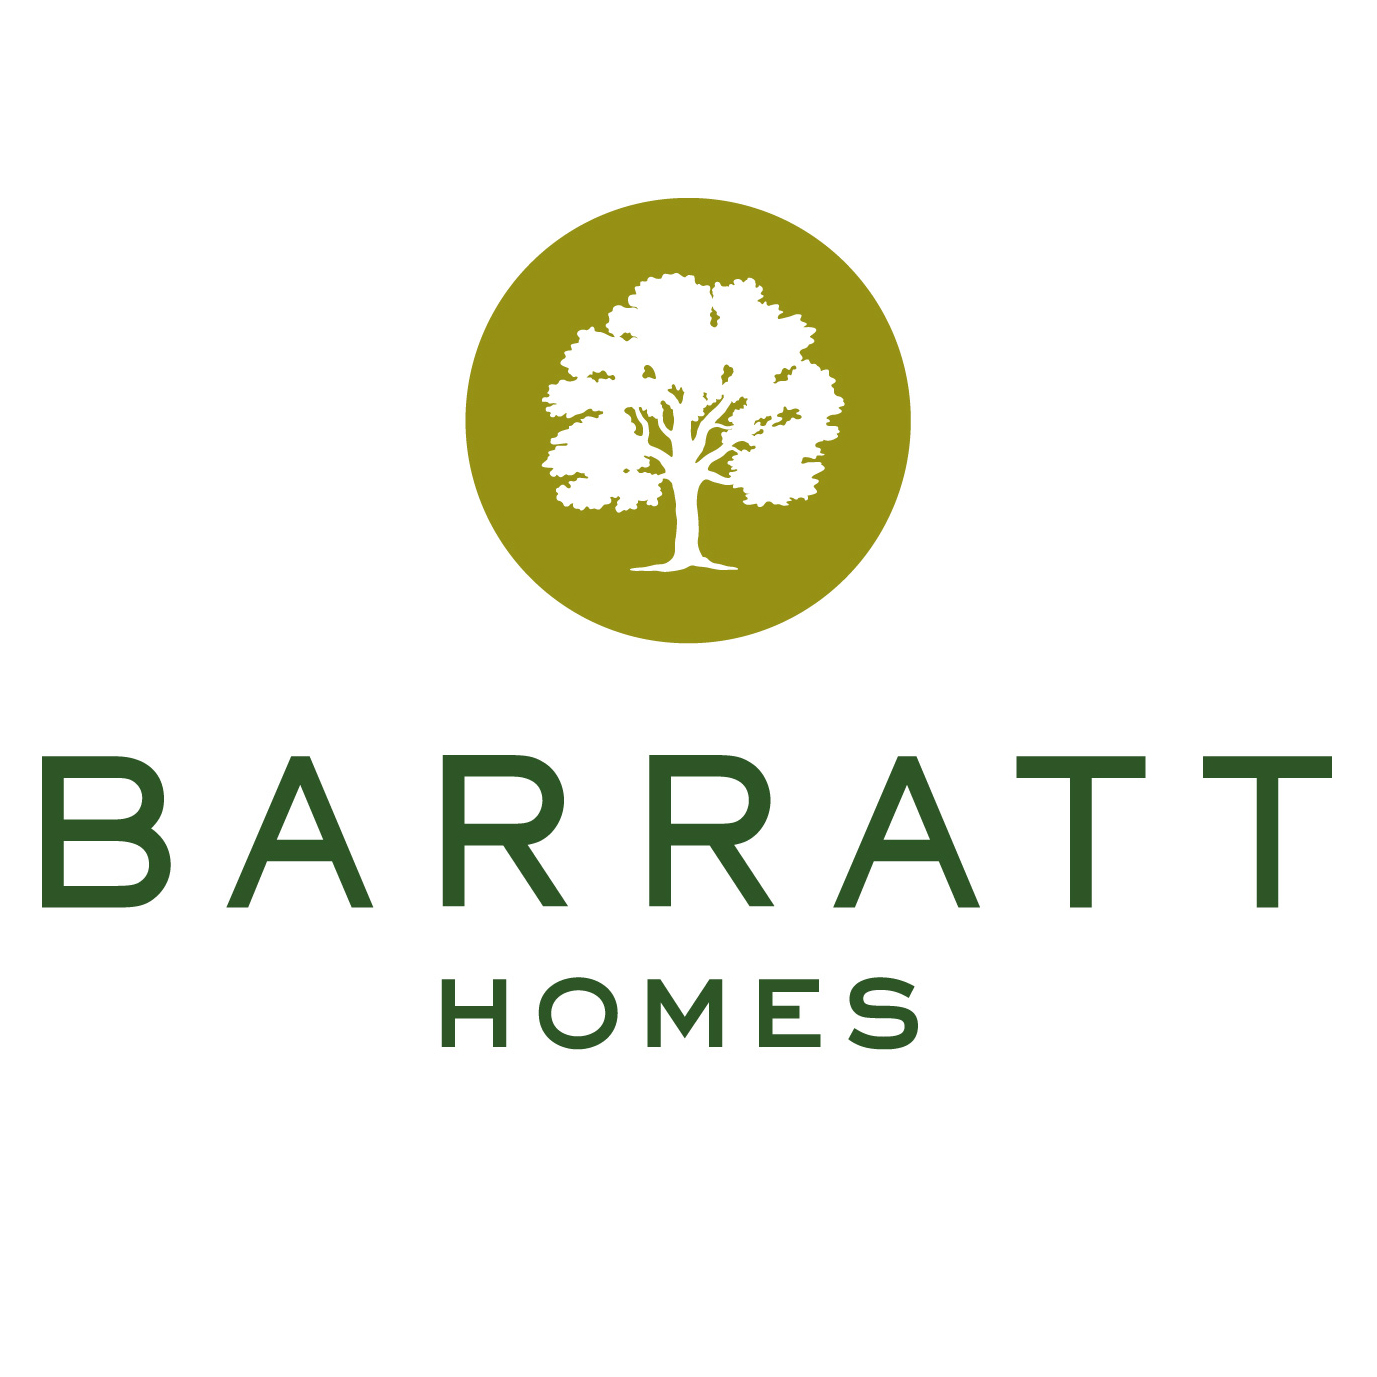 Barratt Homes.jpg